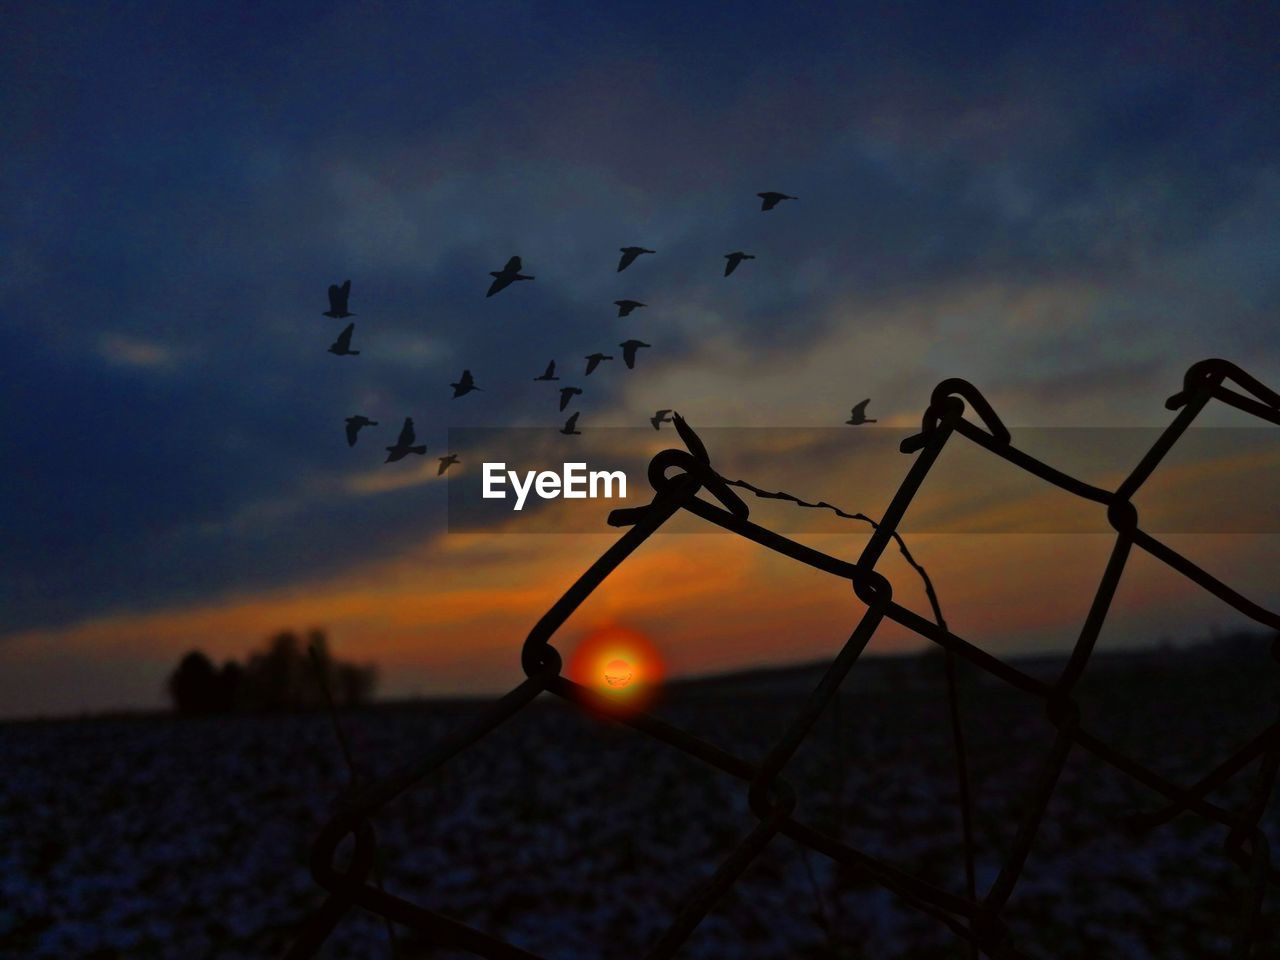 sunset, sky, silhouette, cloud - sky, bird, beauty in nature, nature, orange color, large group of animals, vertebrate, flying, animals in the wild, animal themes, scenics - nature, group of animals, animal, animal wildlife, metal, fence, tranquil scene, no people, flock of birds, outdoors